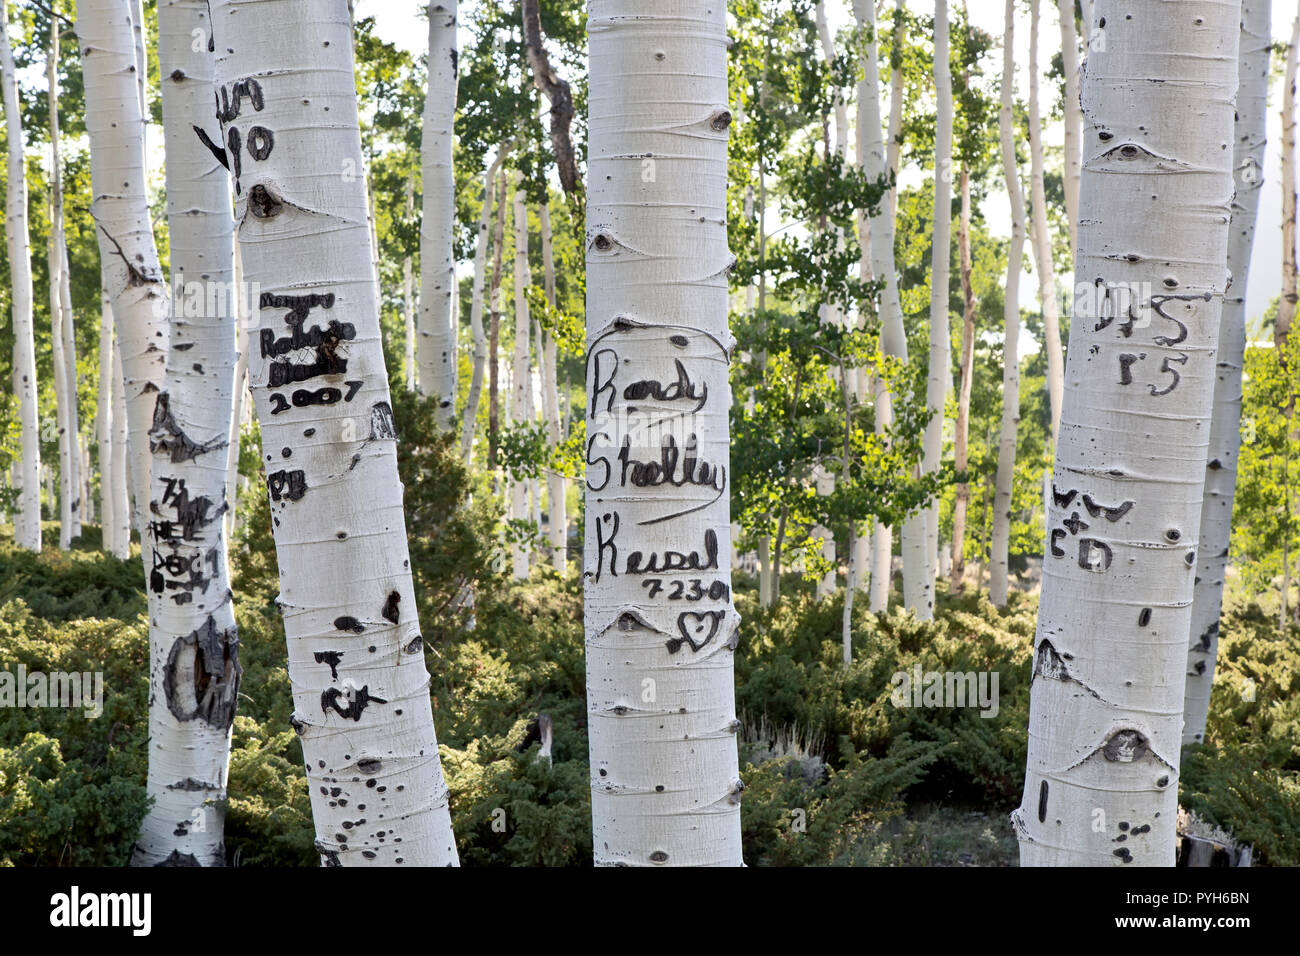 Carved initials, names & dates on Quaking Aspen trees,  damaging the bark & cadmium layer  of the trees, Pando Clone, also known as Trembling Giants. - Stock Image